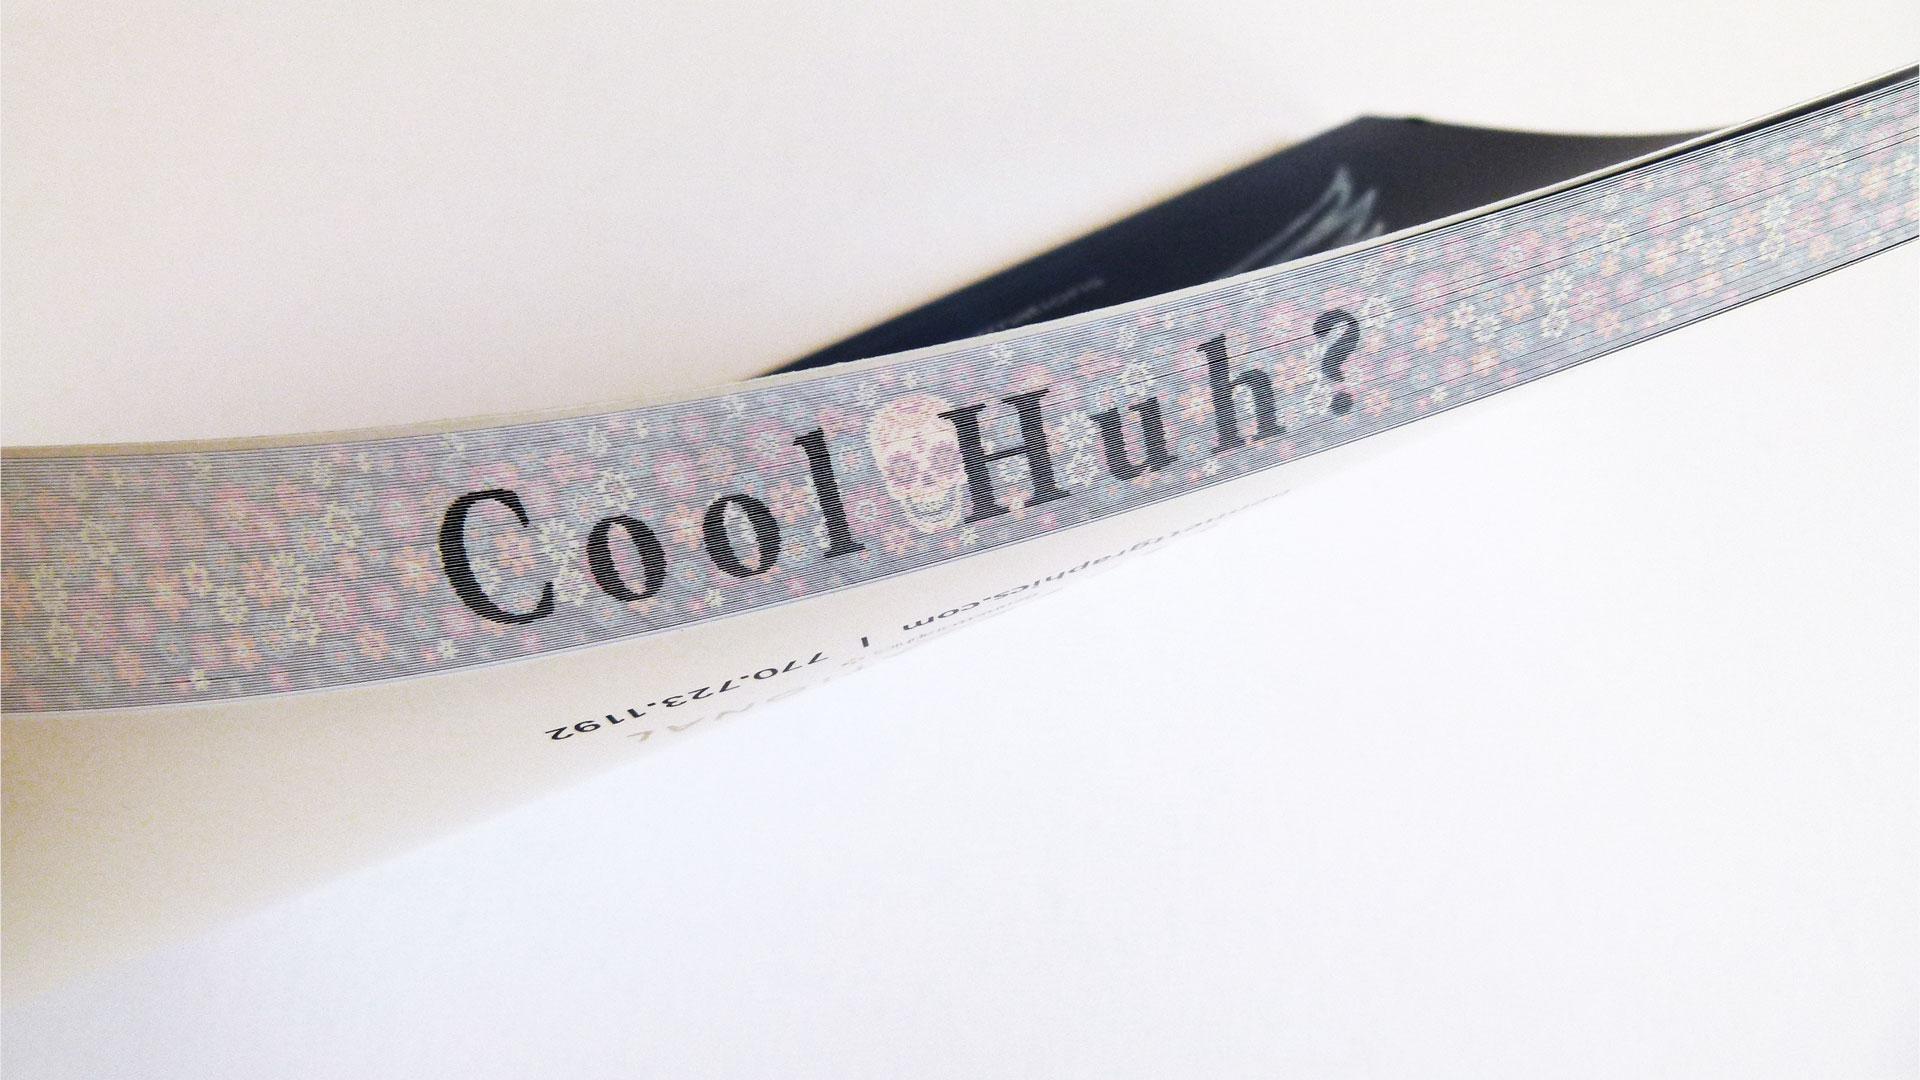 Outer edge of 'Cool huh' journal using notebook printing technique.